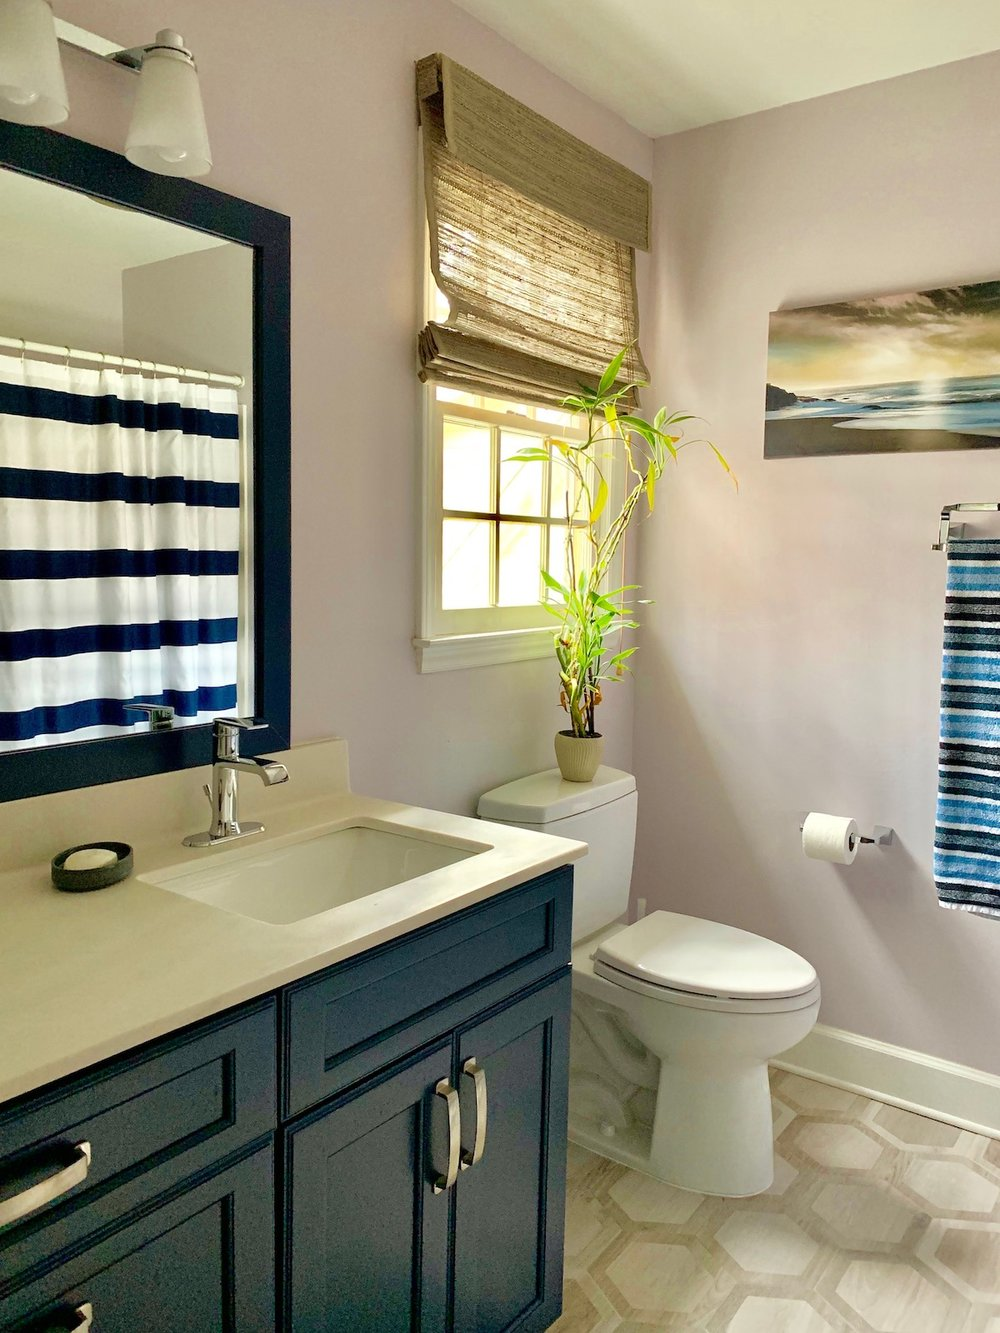 When the kids bathroom has the right storage and finishes, it's much easier for them to keep it clean.